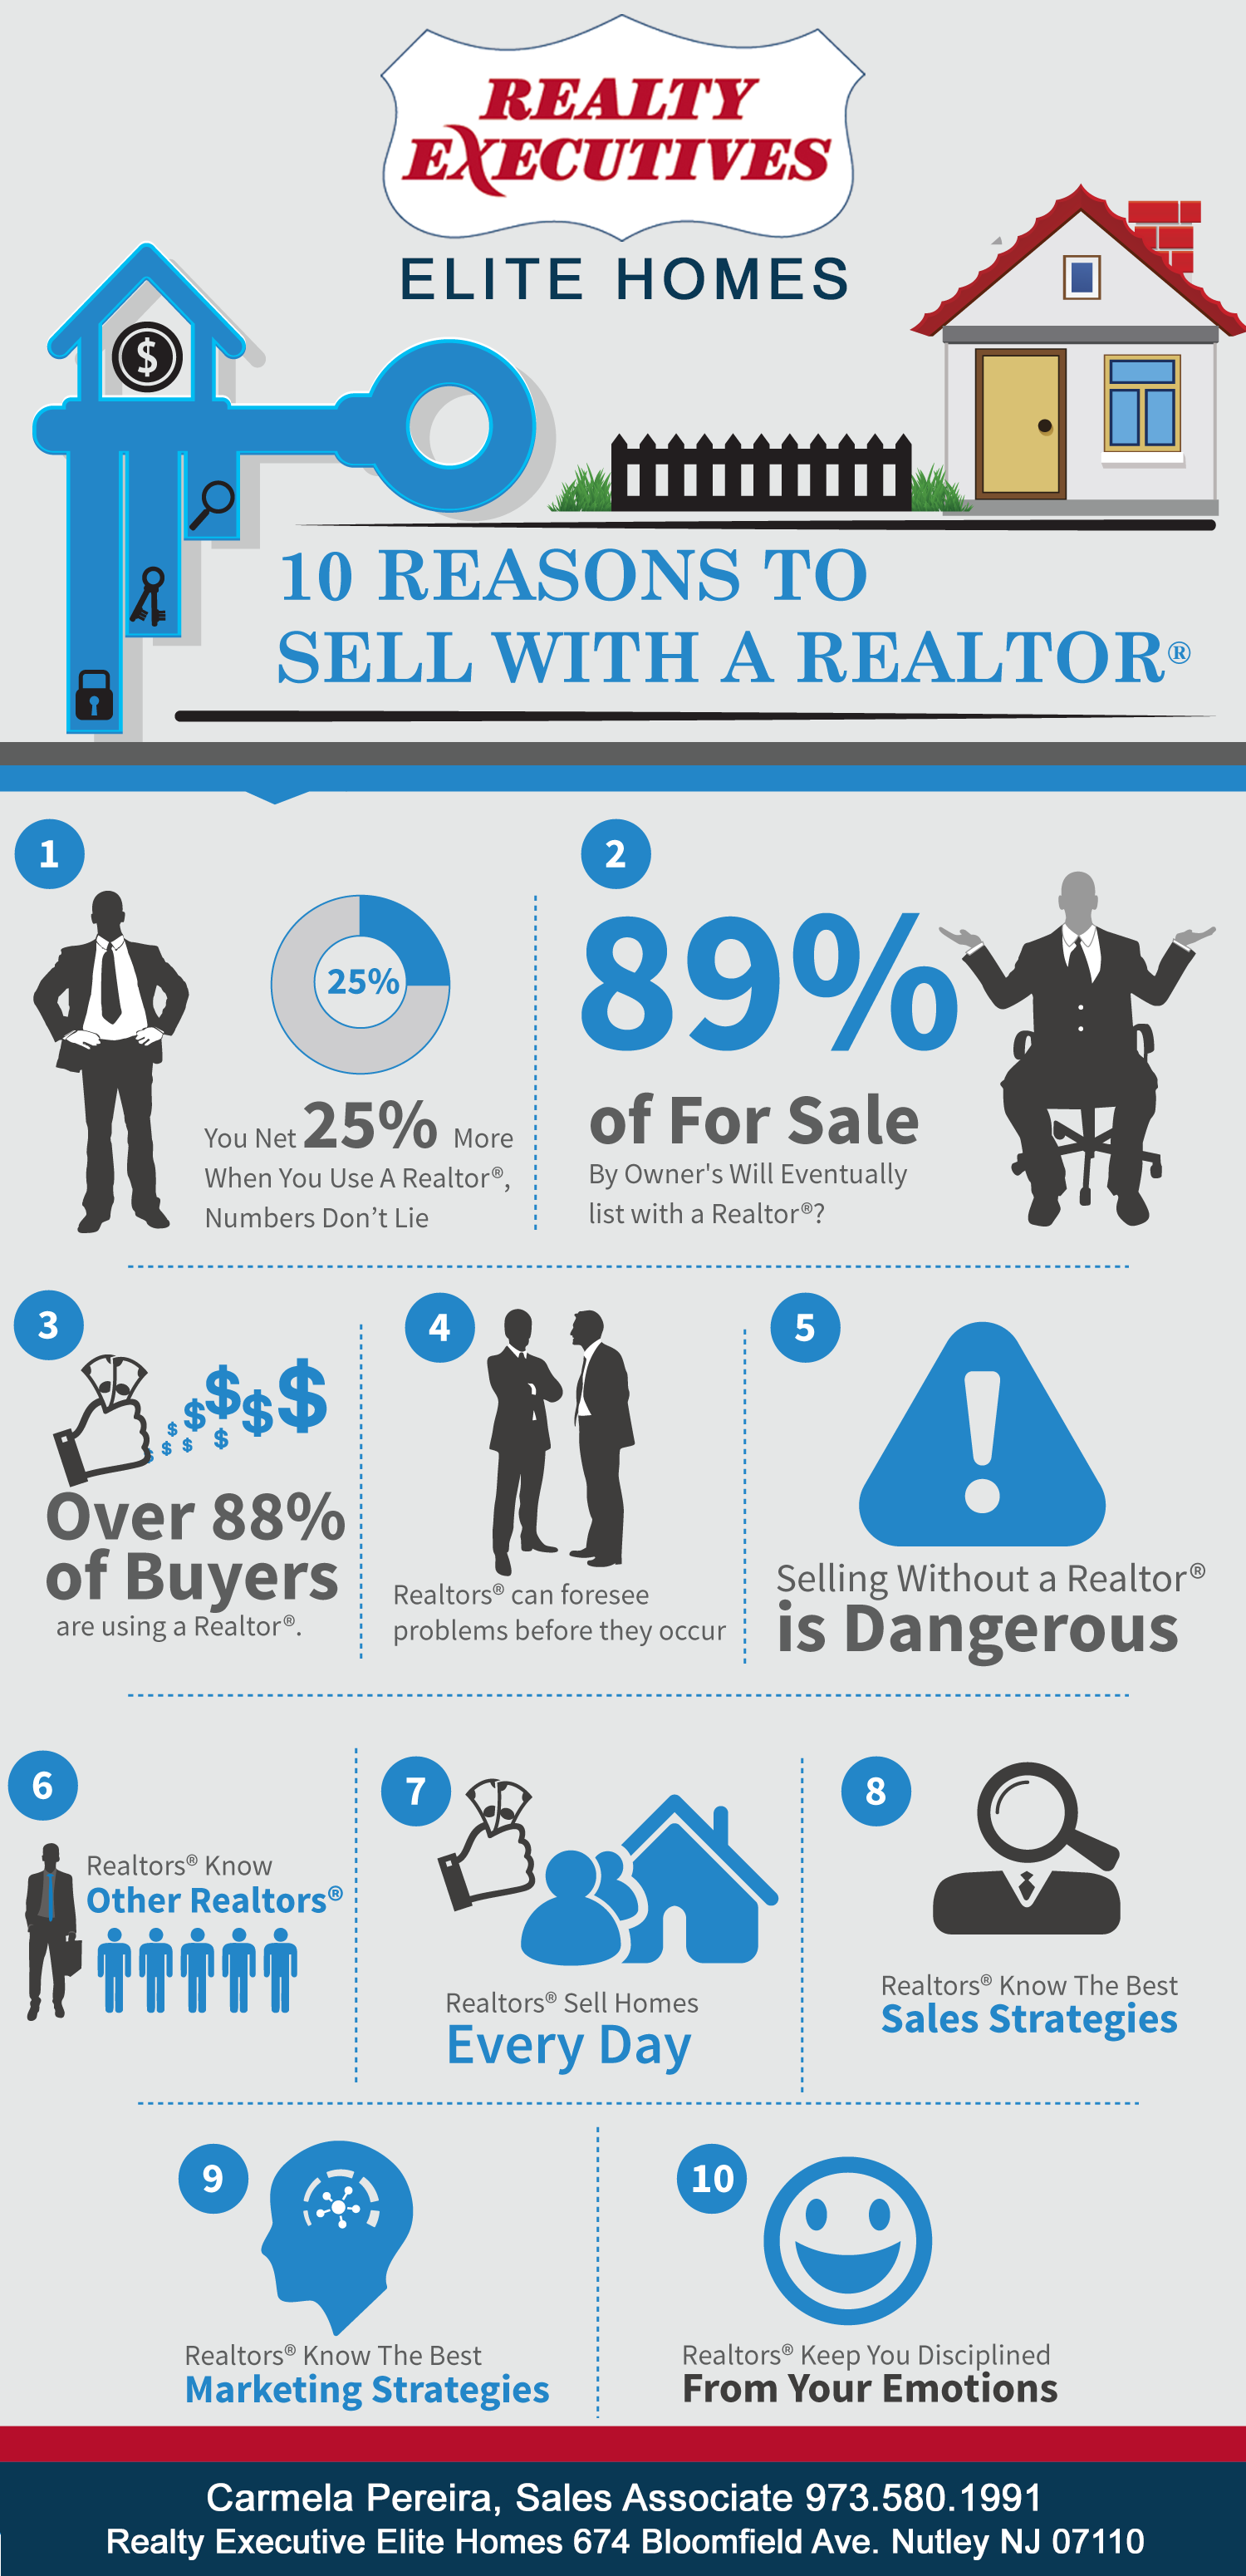 10 Reason To Use A Realtor To Sell Your Home